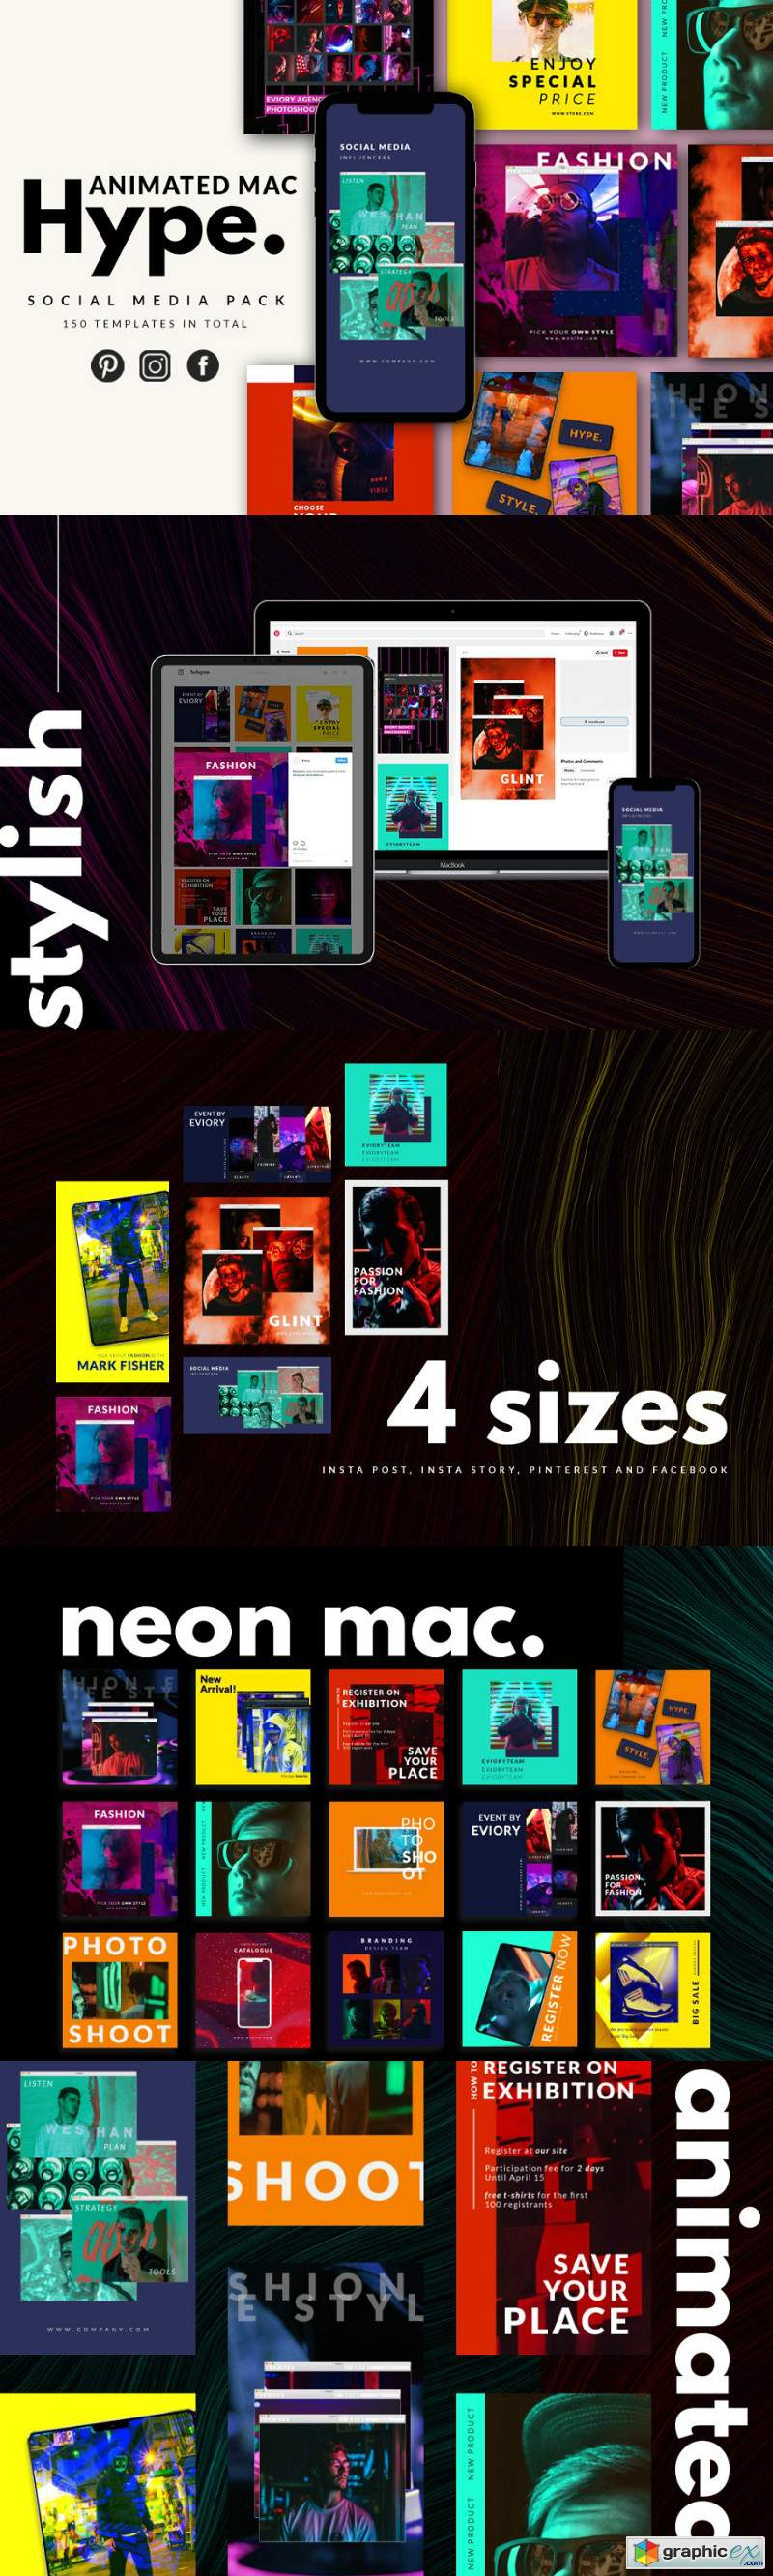 Animated Mac Hype Instagram Pack » Free Download Vector